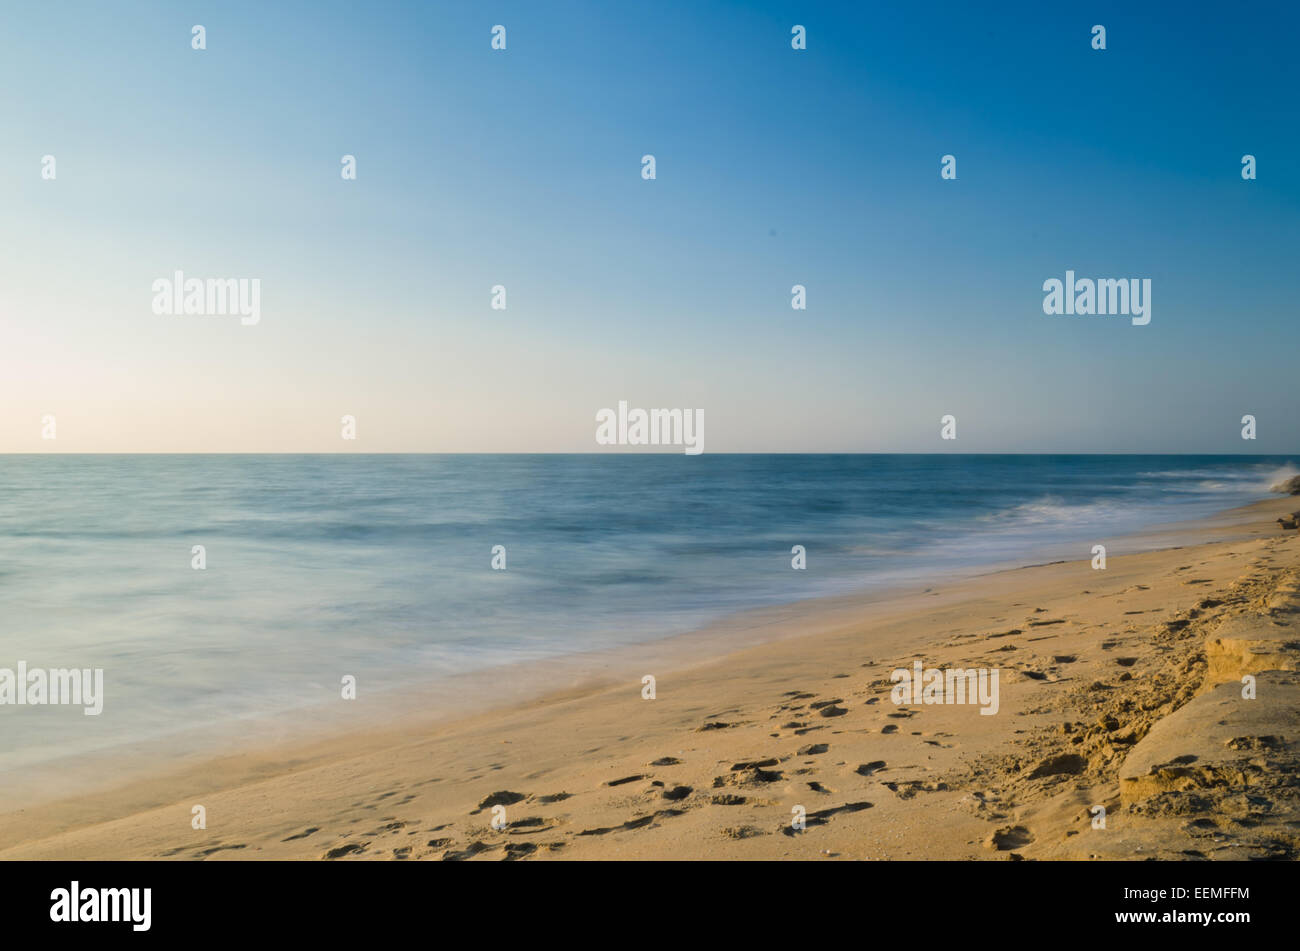 Beach & foot steps - Stock Image